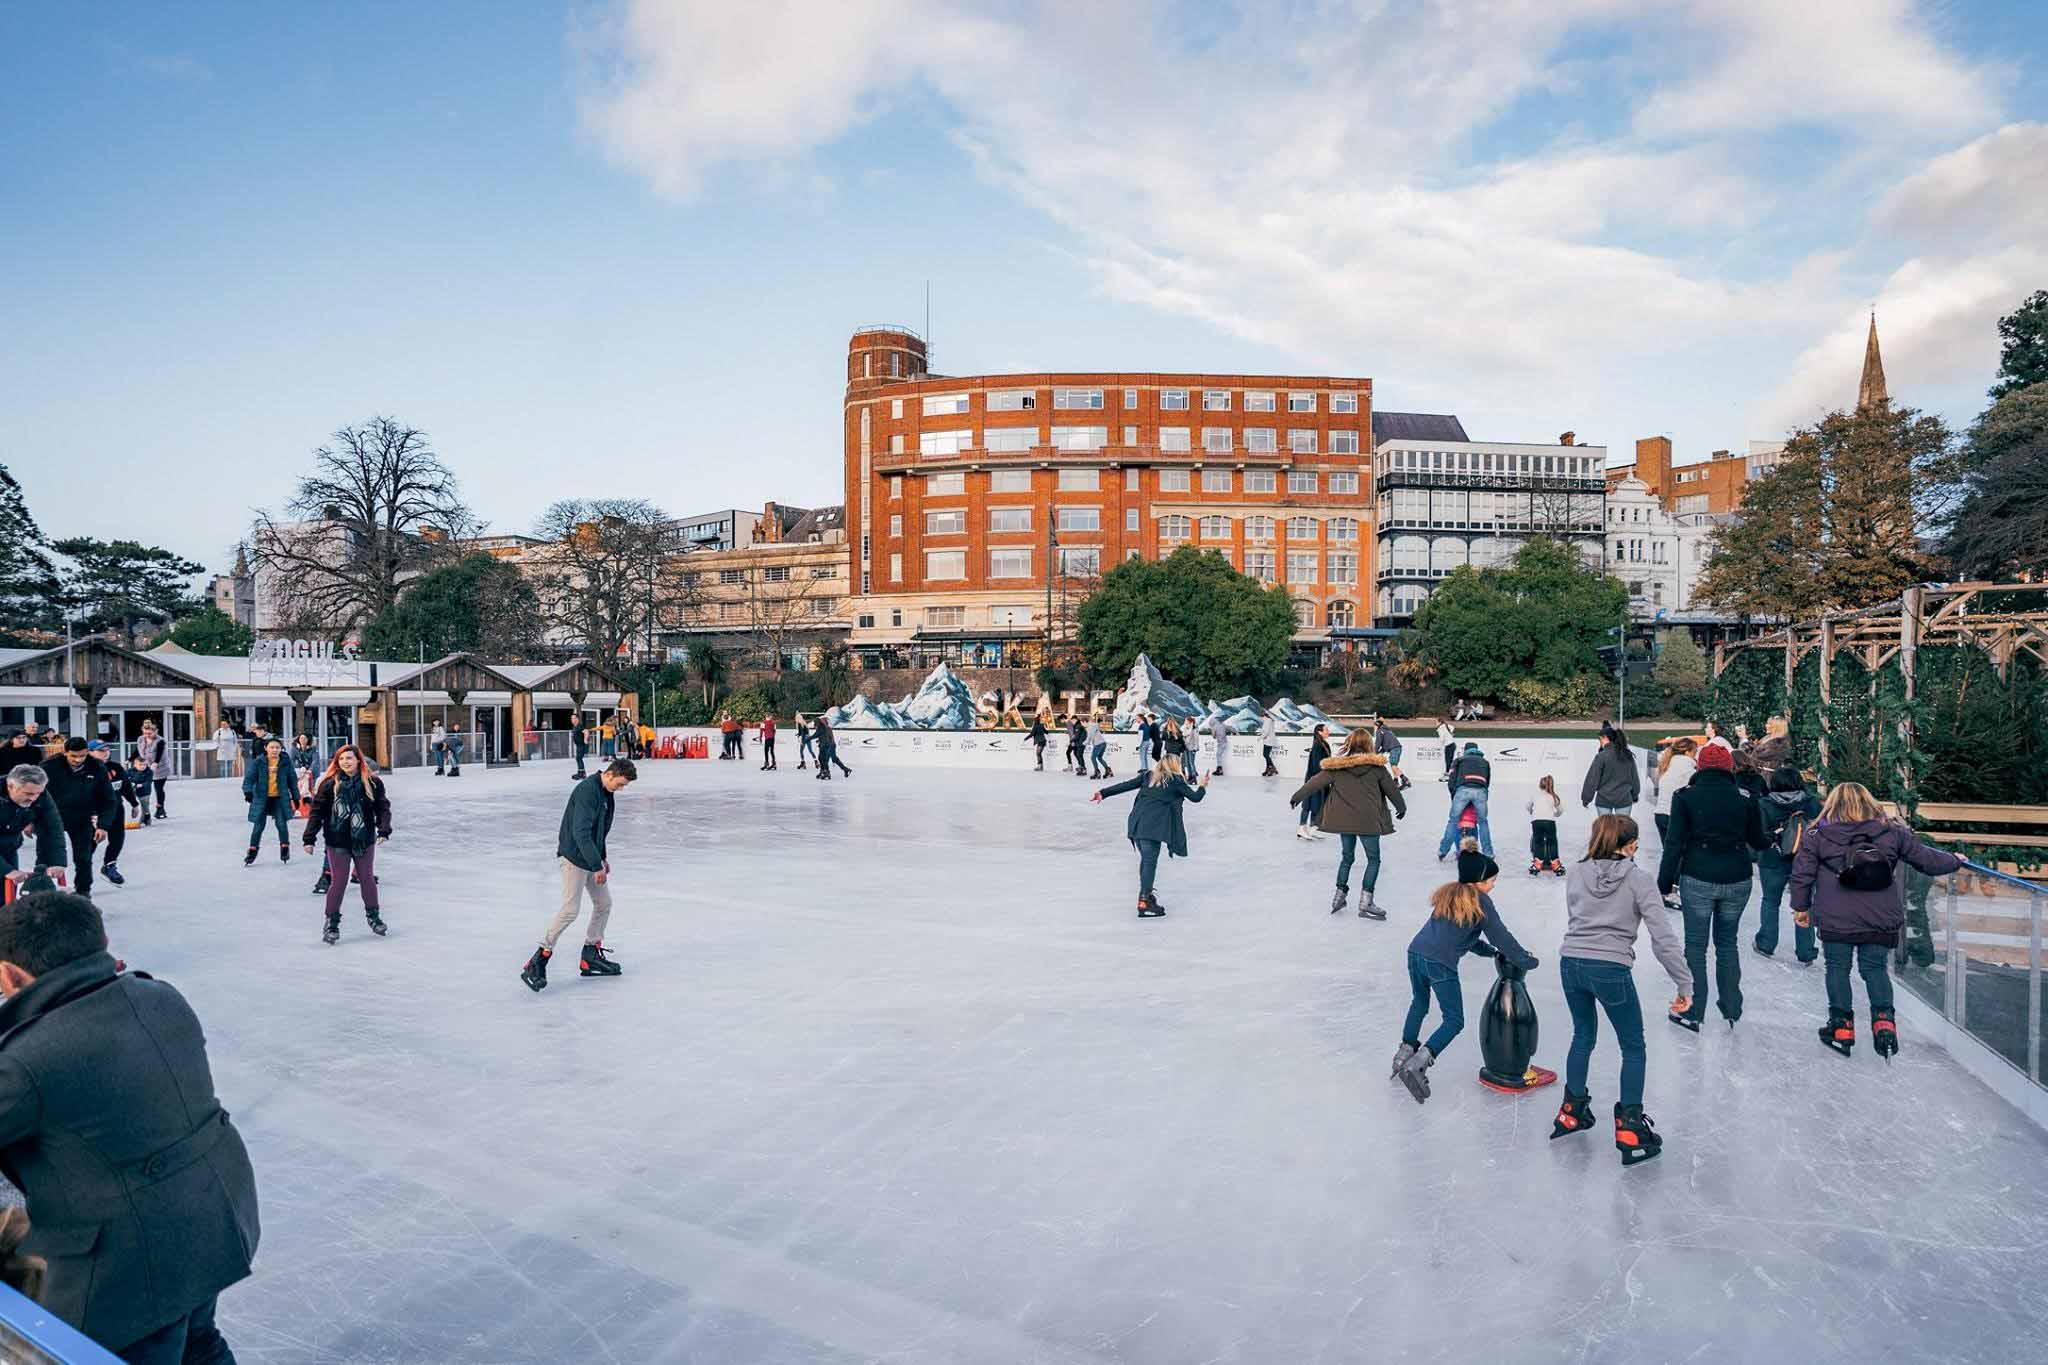 Skate Ice Rink in the Bournemouth Lower Gardens